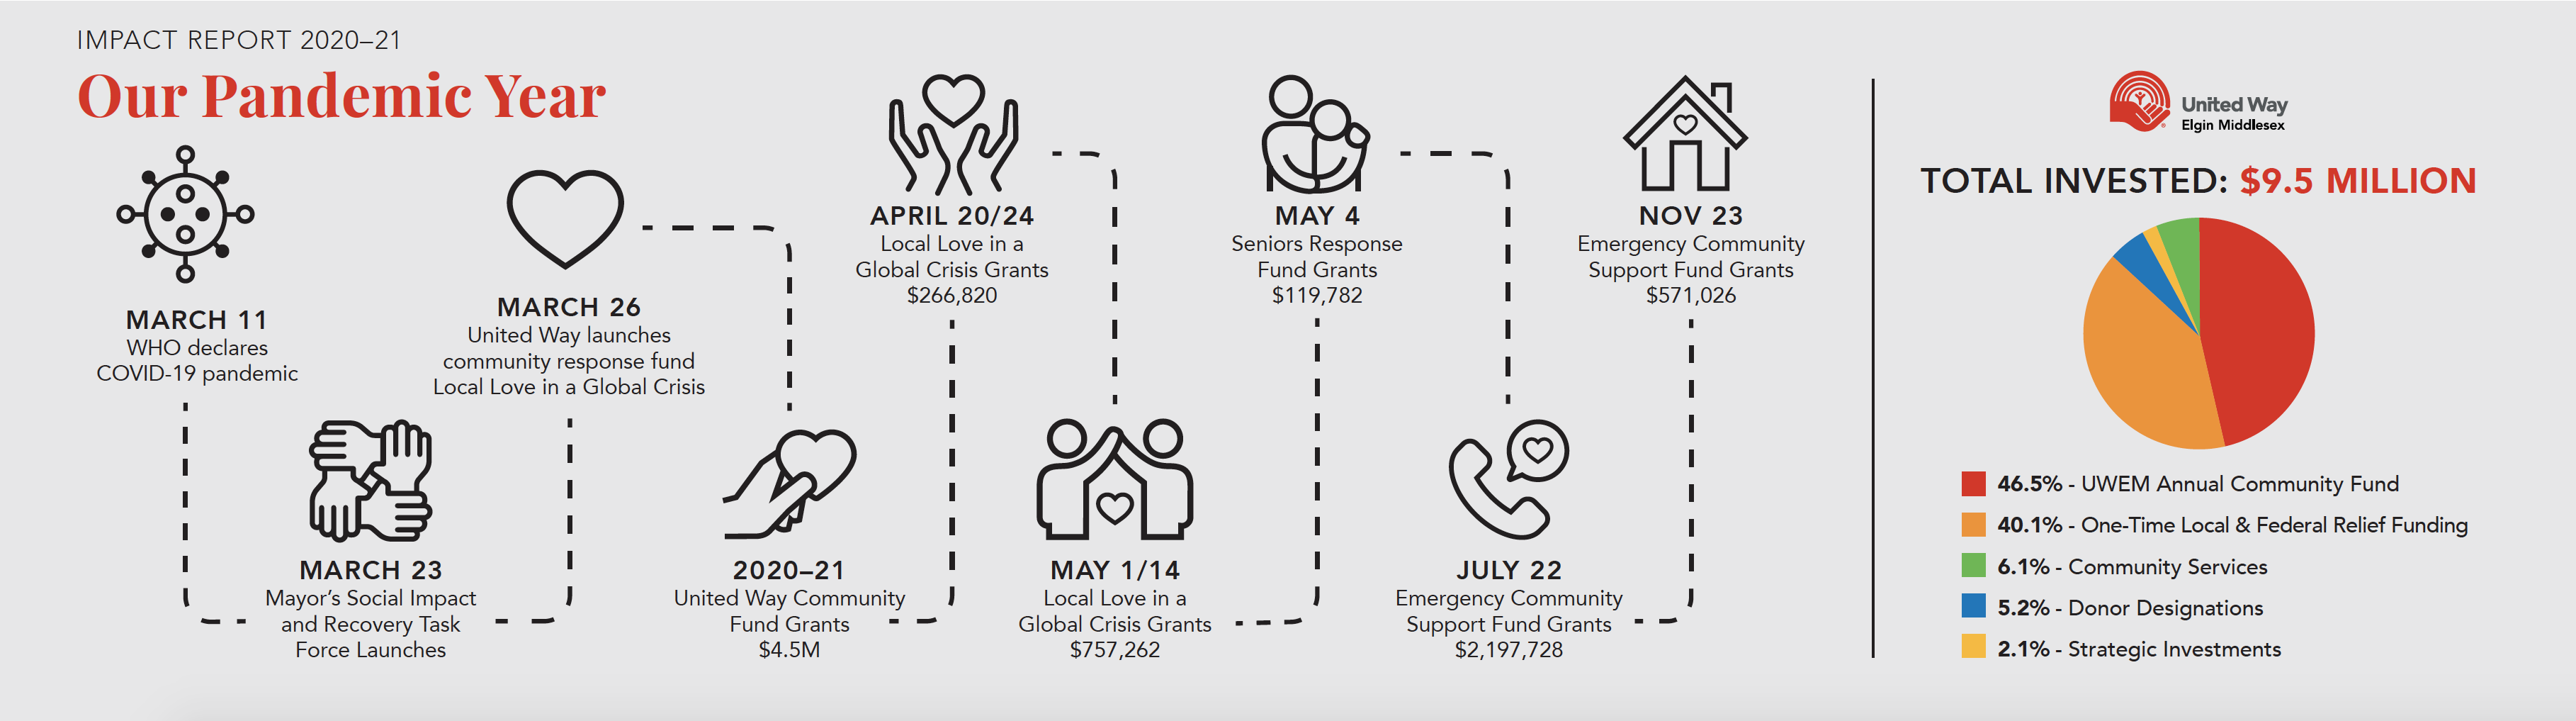 2020-21 Impact Report timeline - Our Pandemic Year